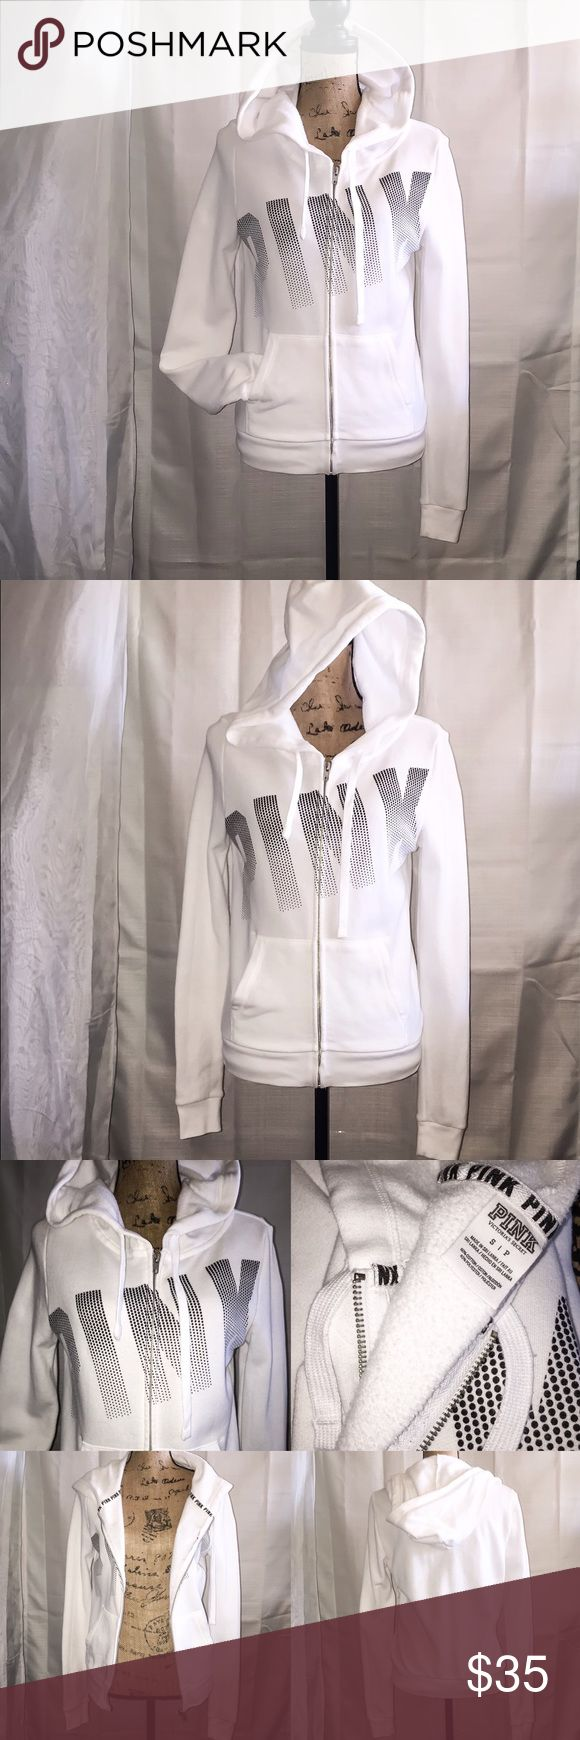 VS PINK Zip up Hoodie, Victoria Secret Hoodie This VS PINK hoodie is a bright white with black lettering. It is in good shape, I never put it in the dryer, always air dry. I am downsizing so make an offer if you are interested. No trades. PINK Victoria's Secret Jackets & Coats